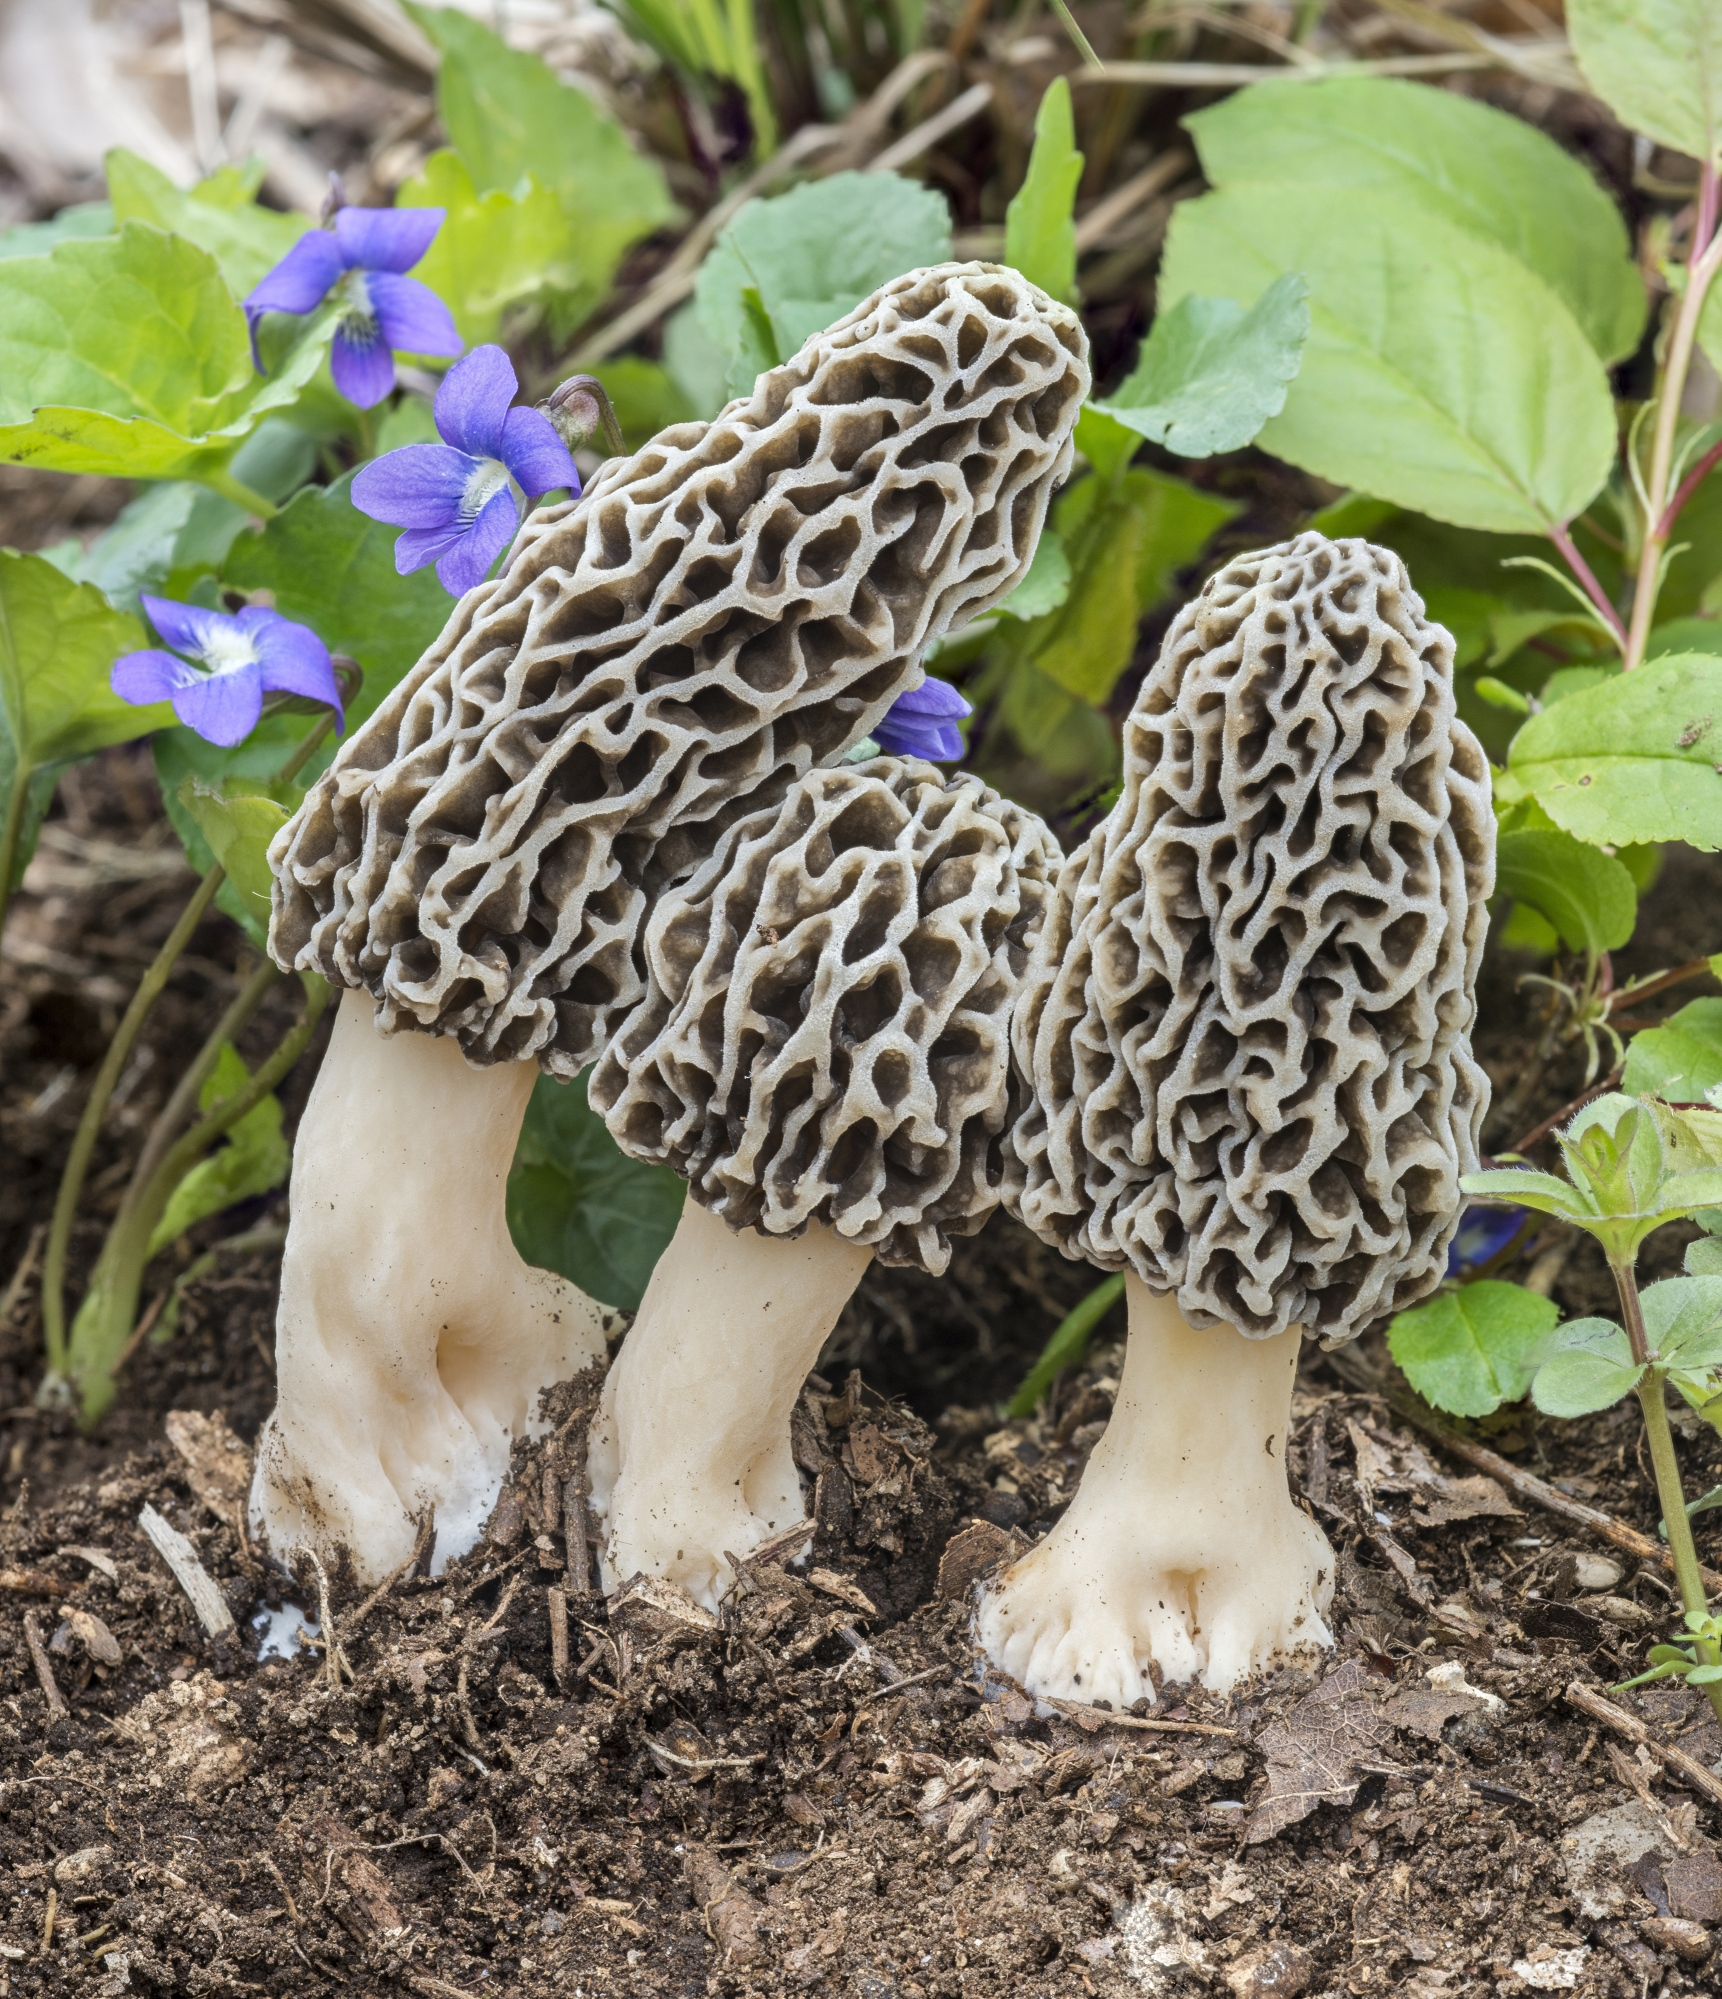 Morchella americana by Robert Gerulics - The 3 foragers